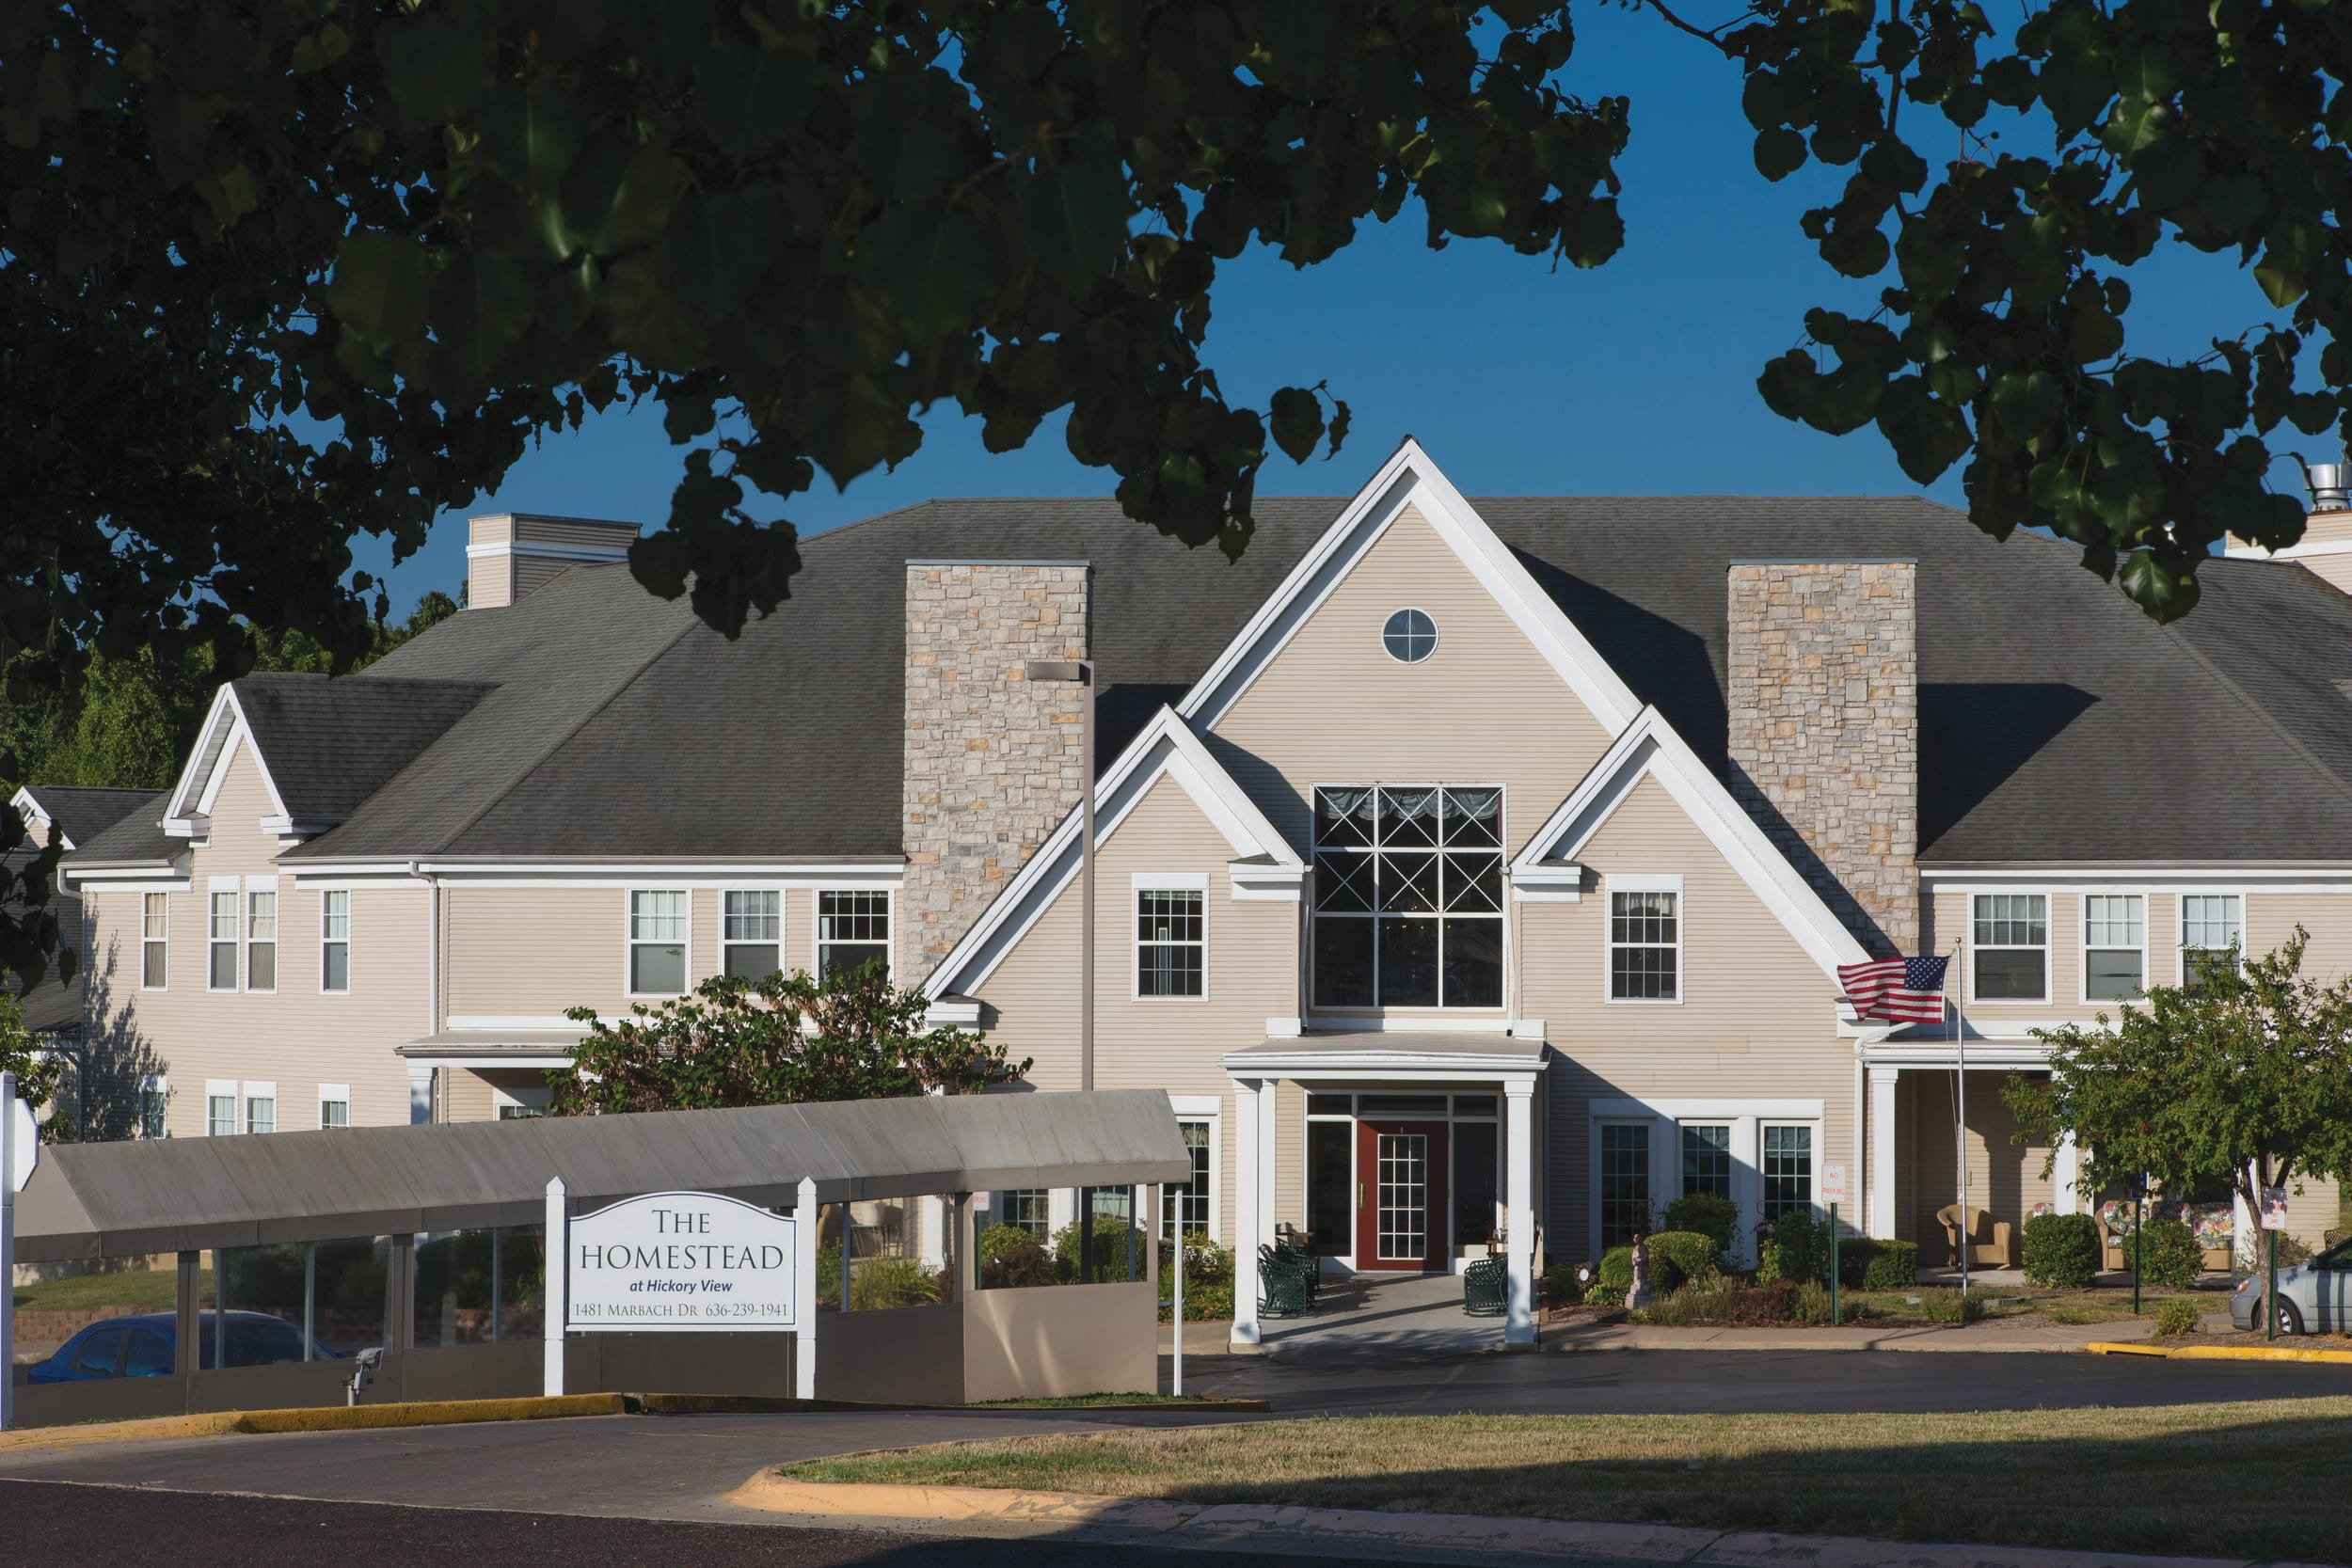 Learn about The Homestead at Hickory View Retirement Community in Washington, MO